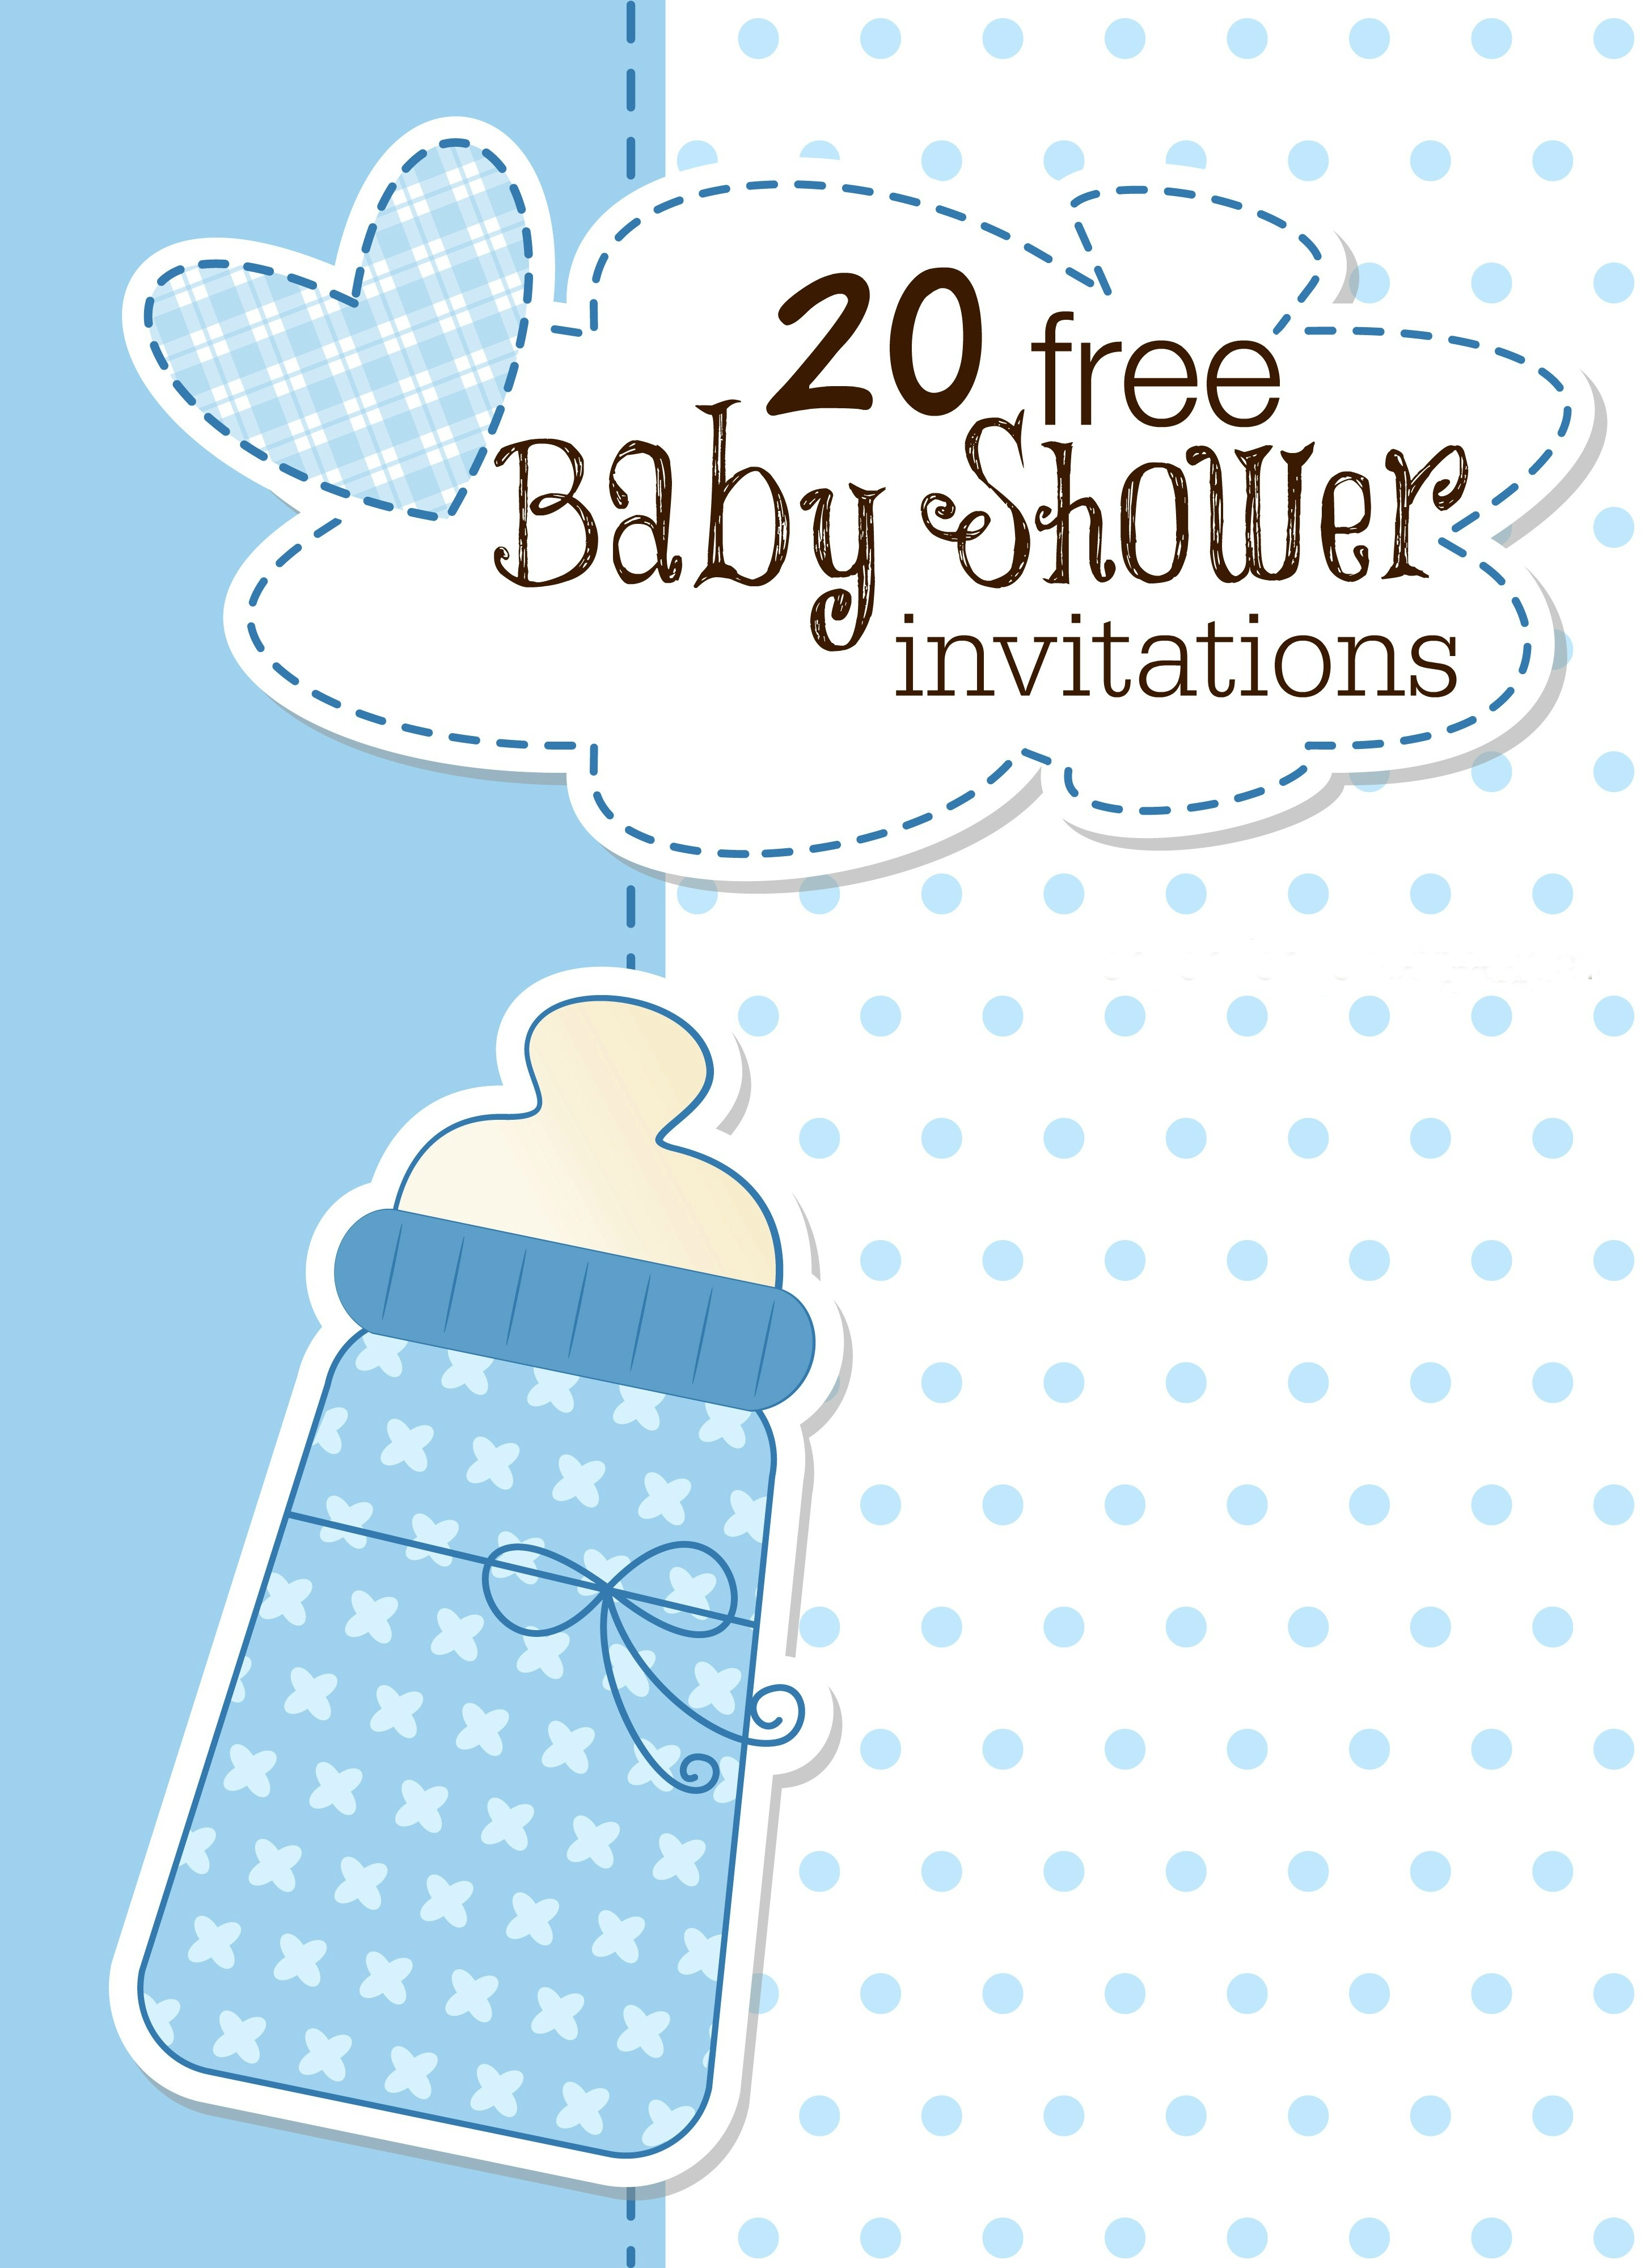 Printable Baby Shower Invitations - Baby Shower Invitations Free Printable For A Boy